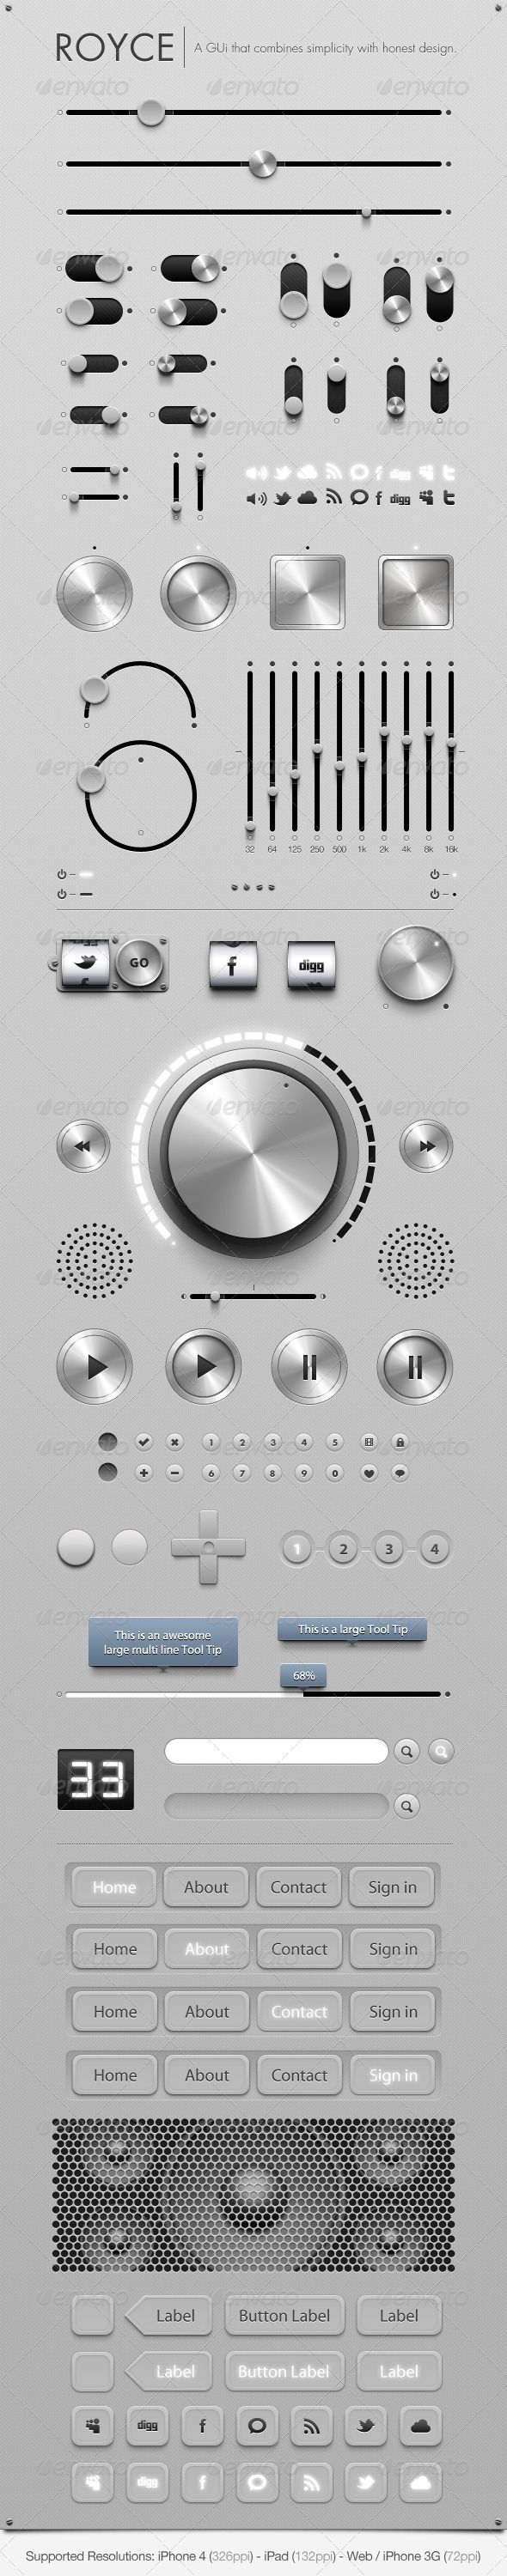 mmmm buttons and knobs